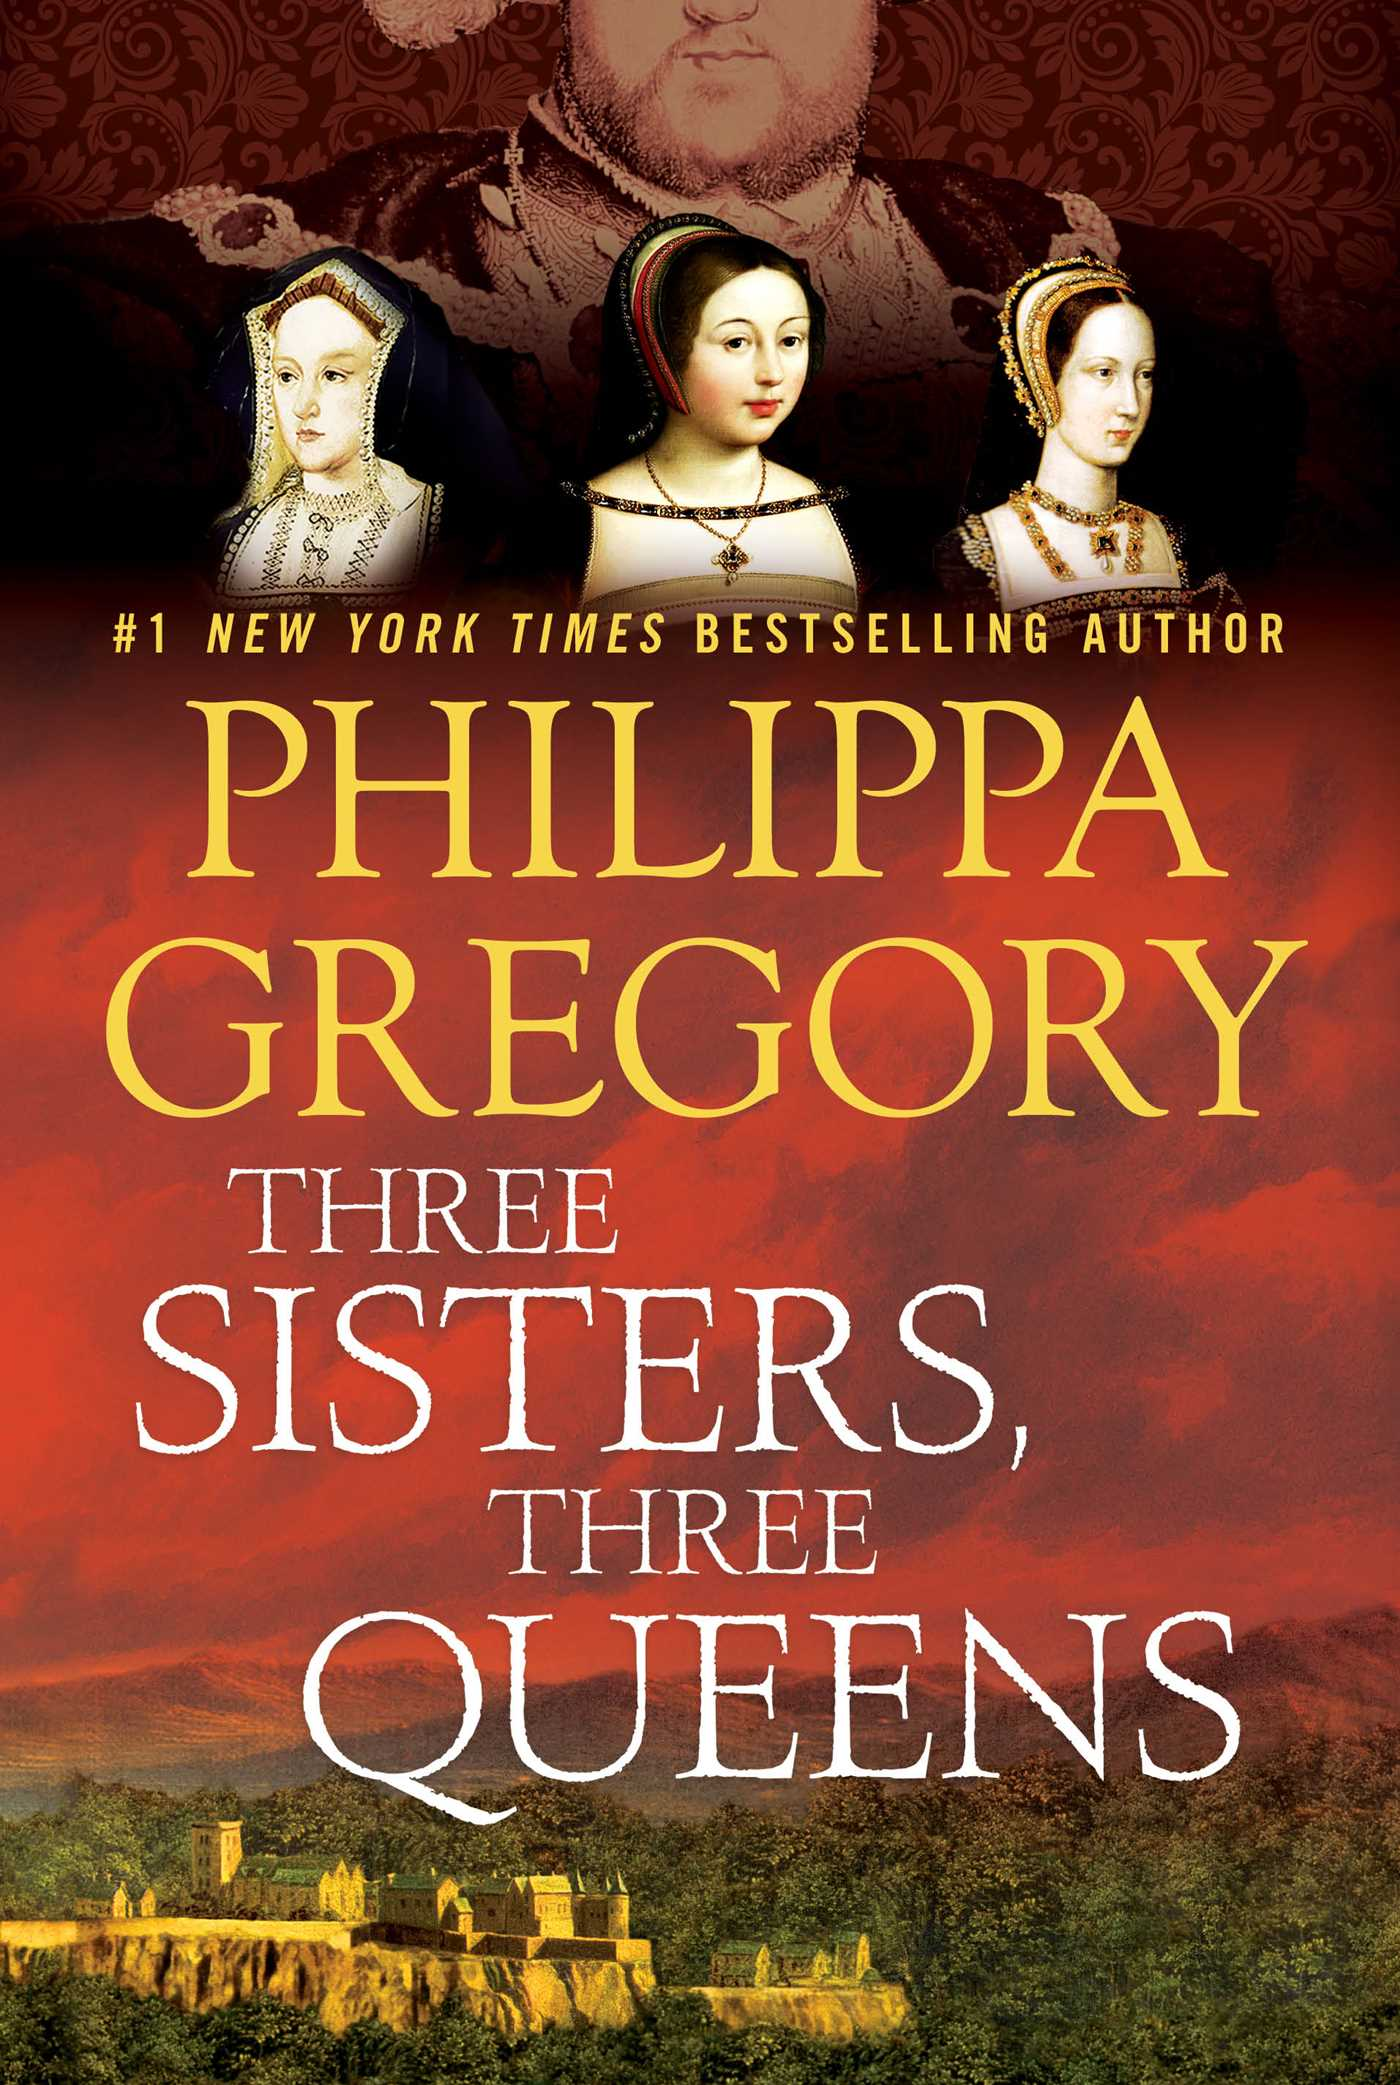 Three sisters, Three Queens ***(*)